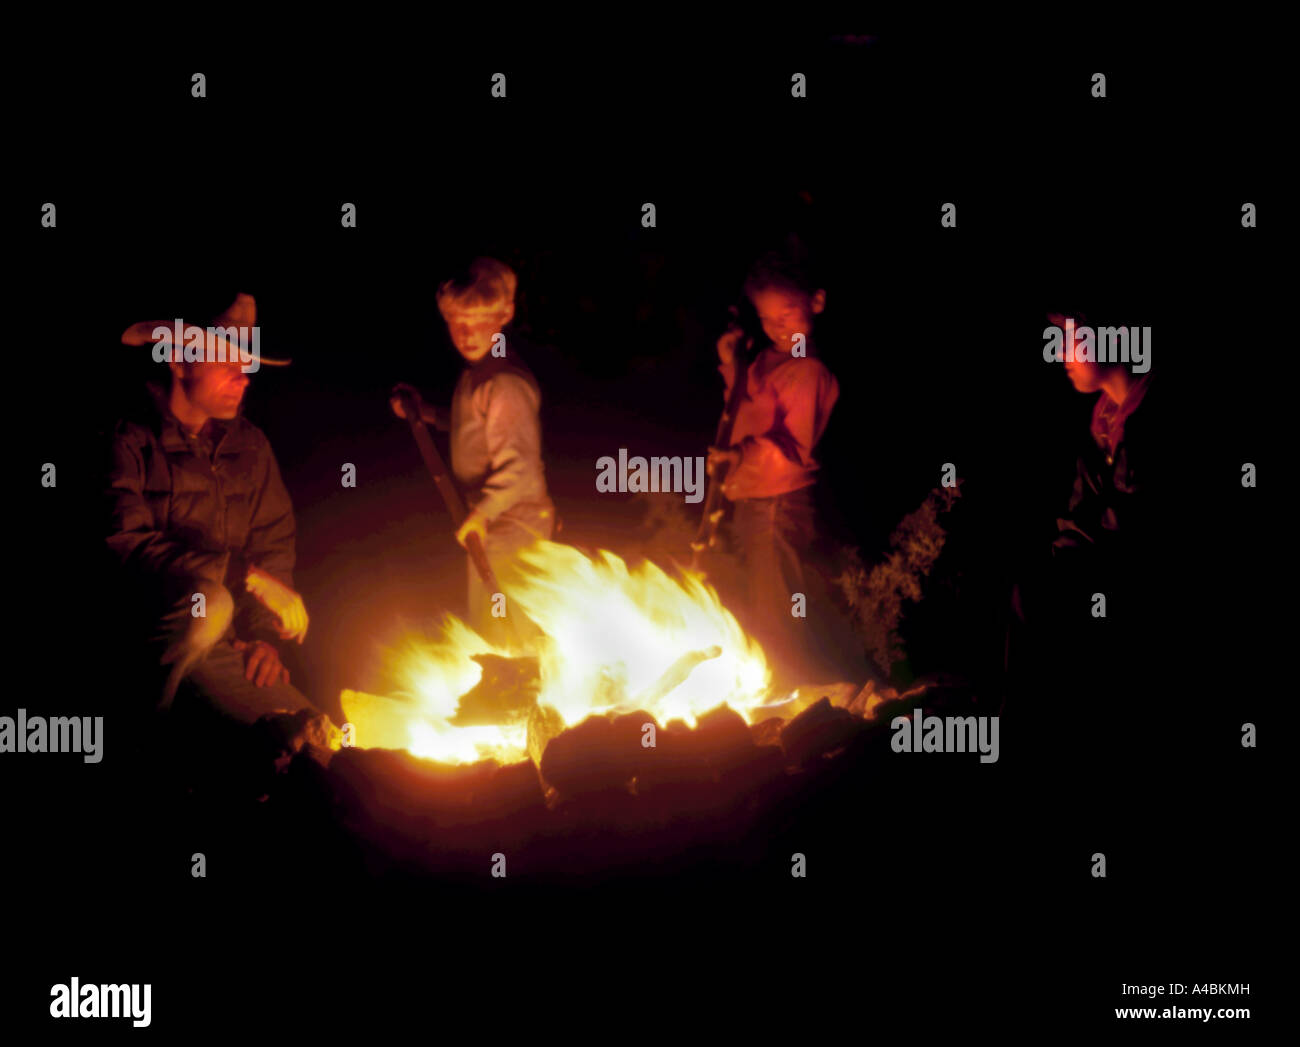 Family Night Campfire Fun Camping Explore Laugh Together Happy Content